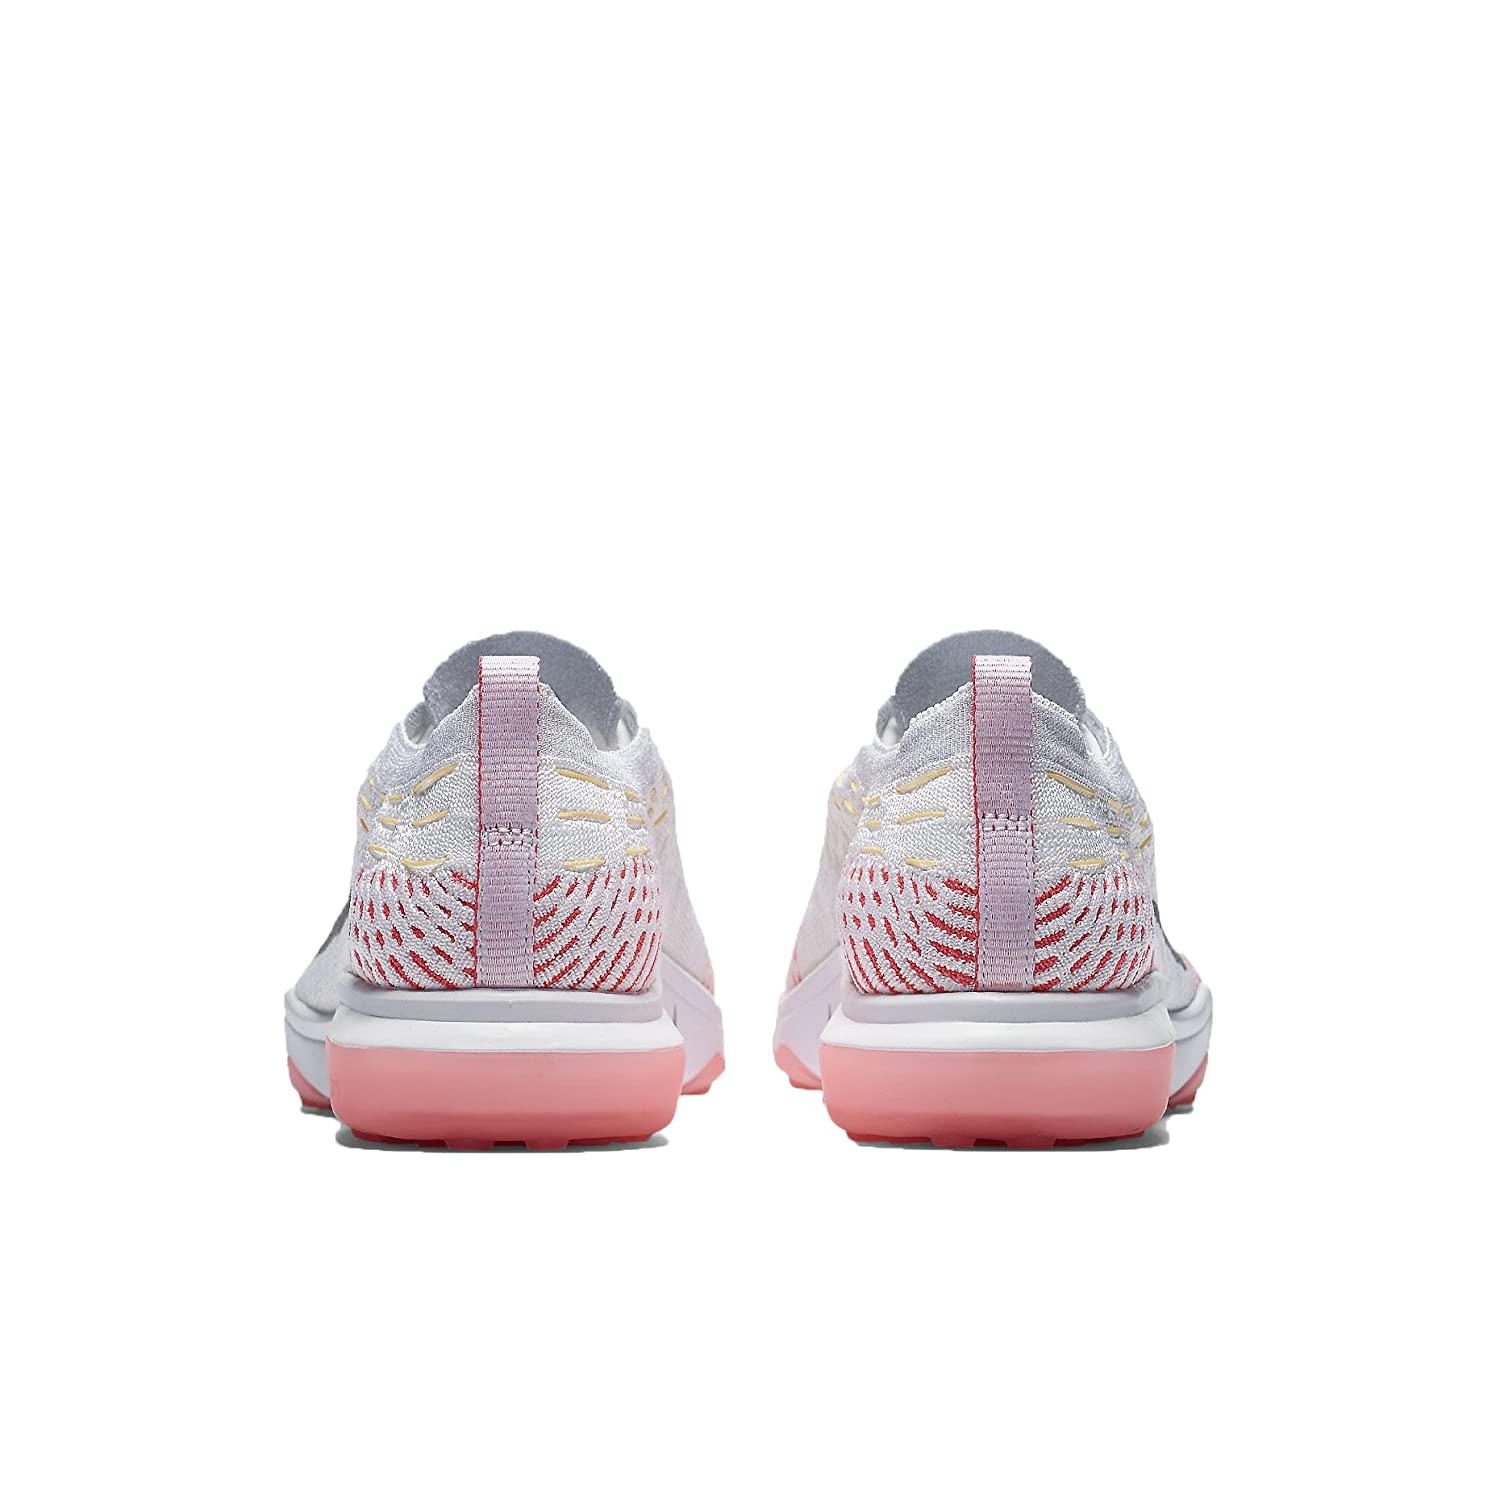 Nike Women's W Air Zoom Fearless Flyknit, WHITE/WOLF GREY-RACER PINK:  Amazon.ca: Shoes & Handbags